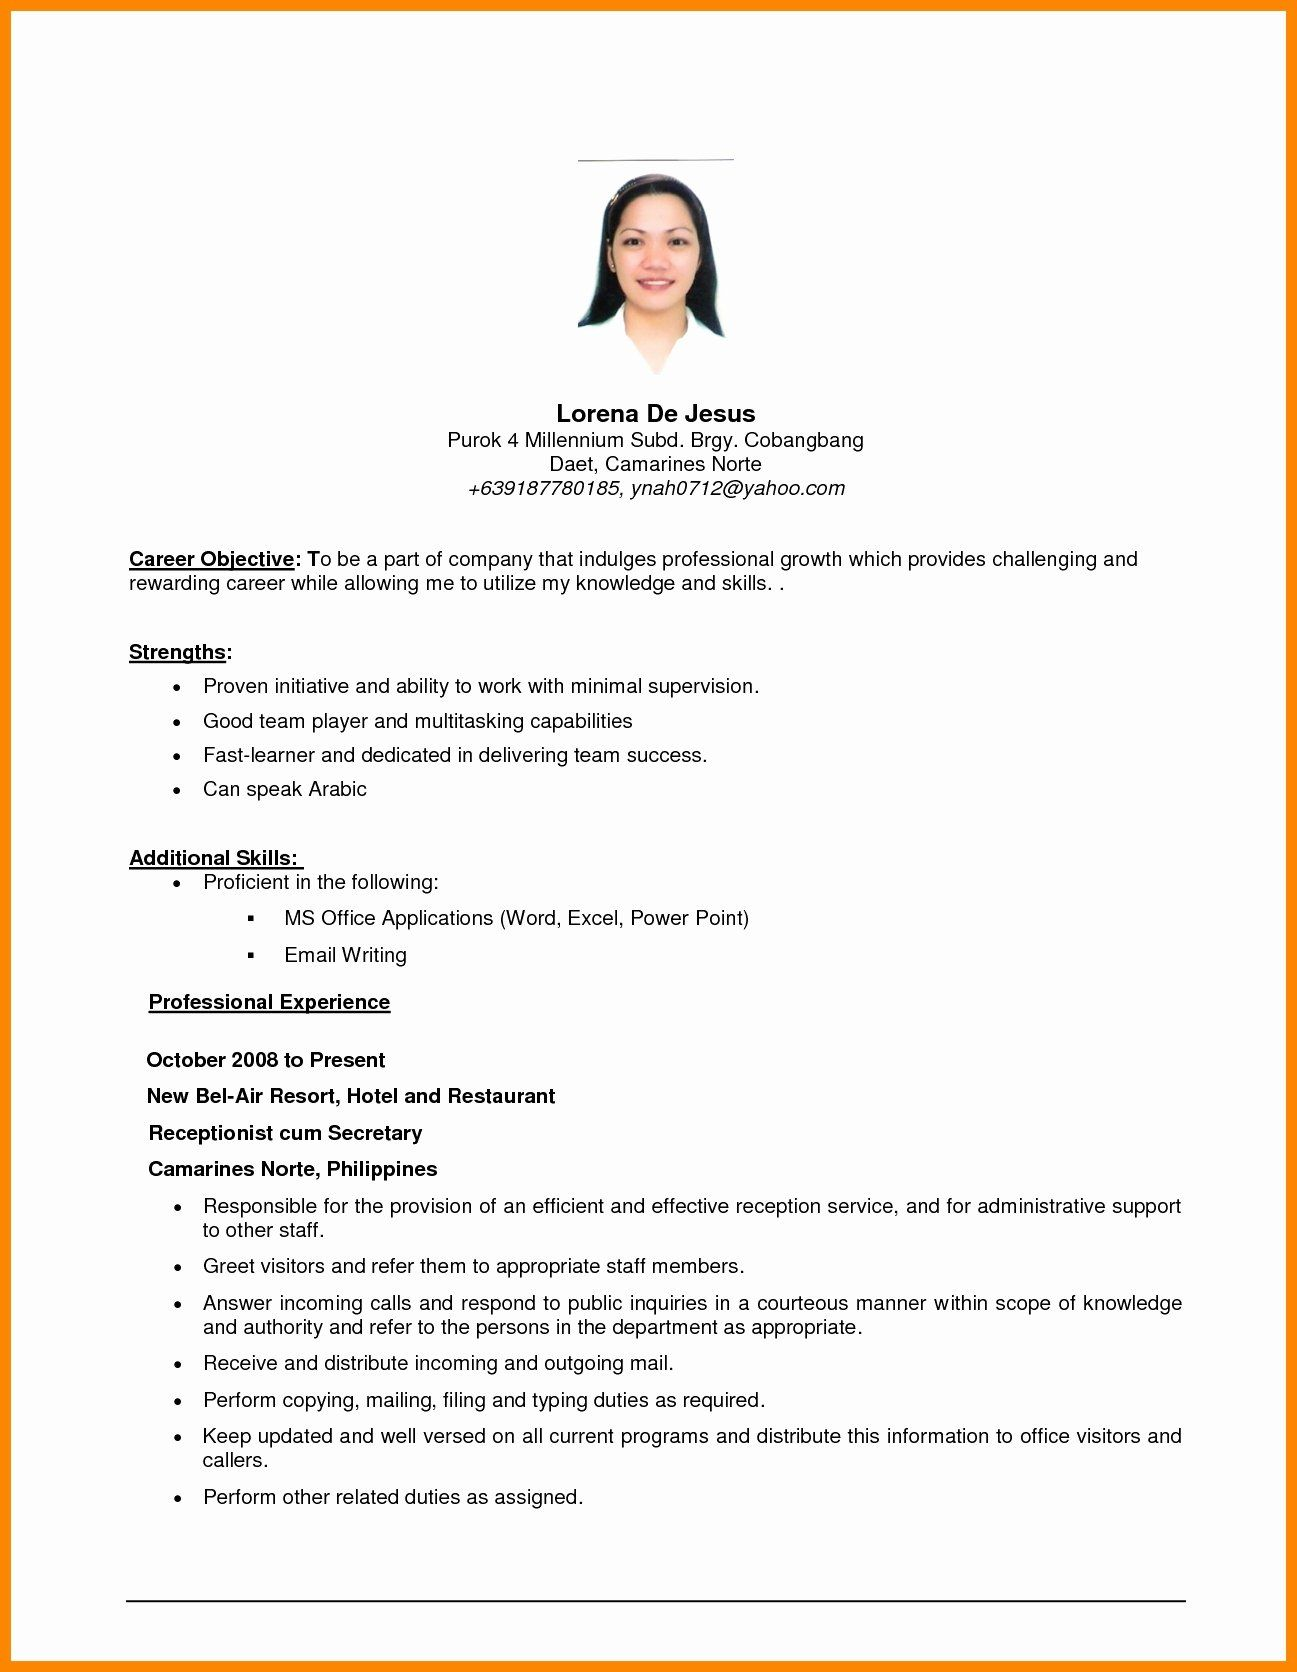 generic objective for resume inspirational general examples career objectives job good Resume Good Objective For Resume For First Job